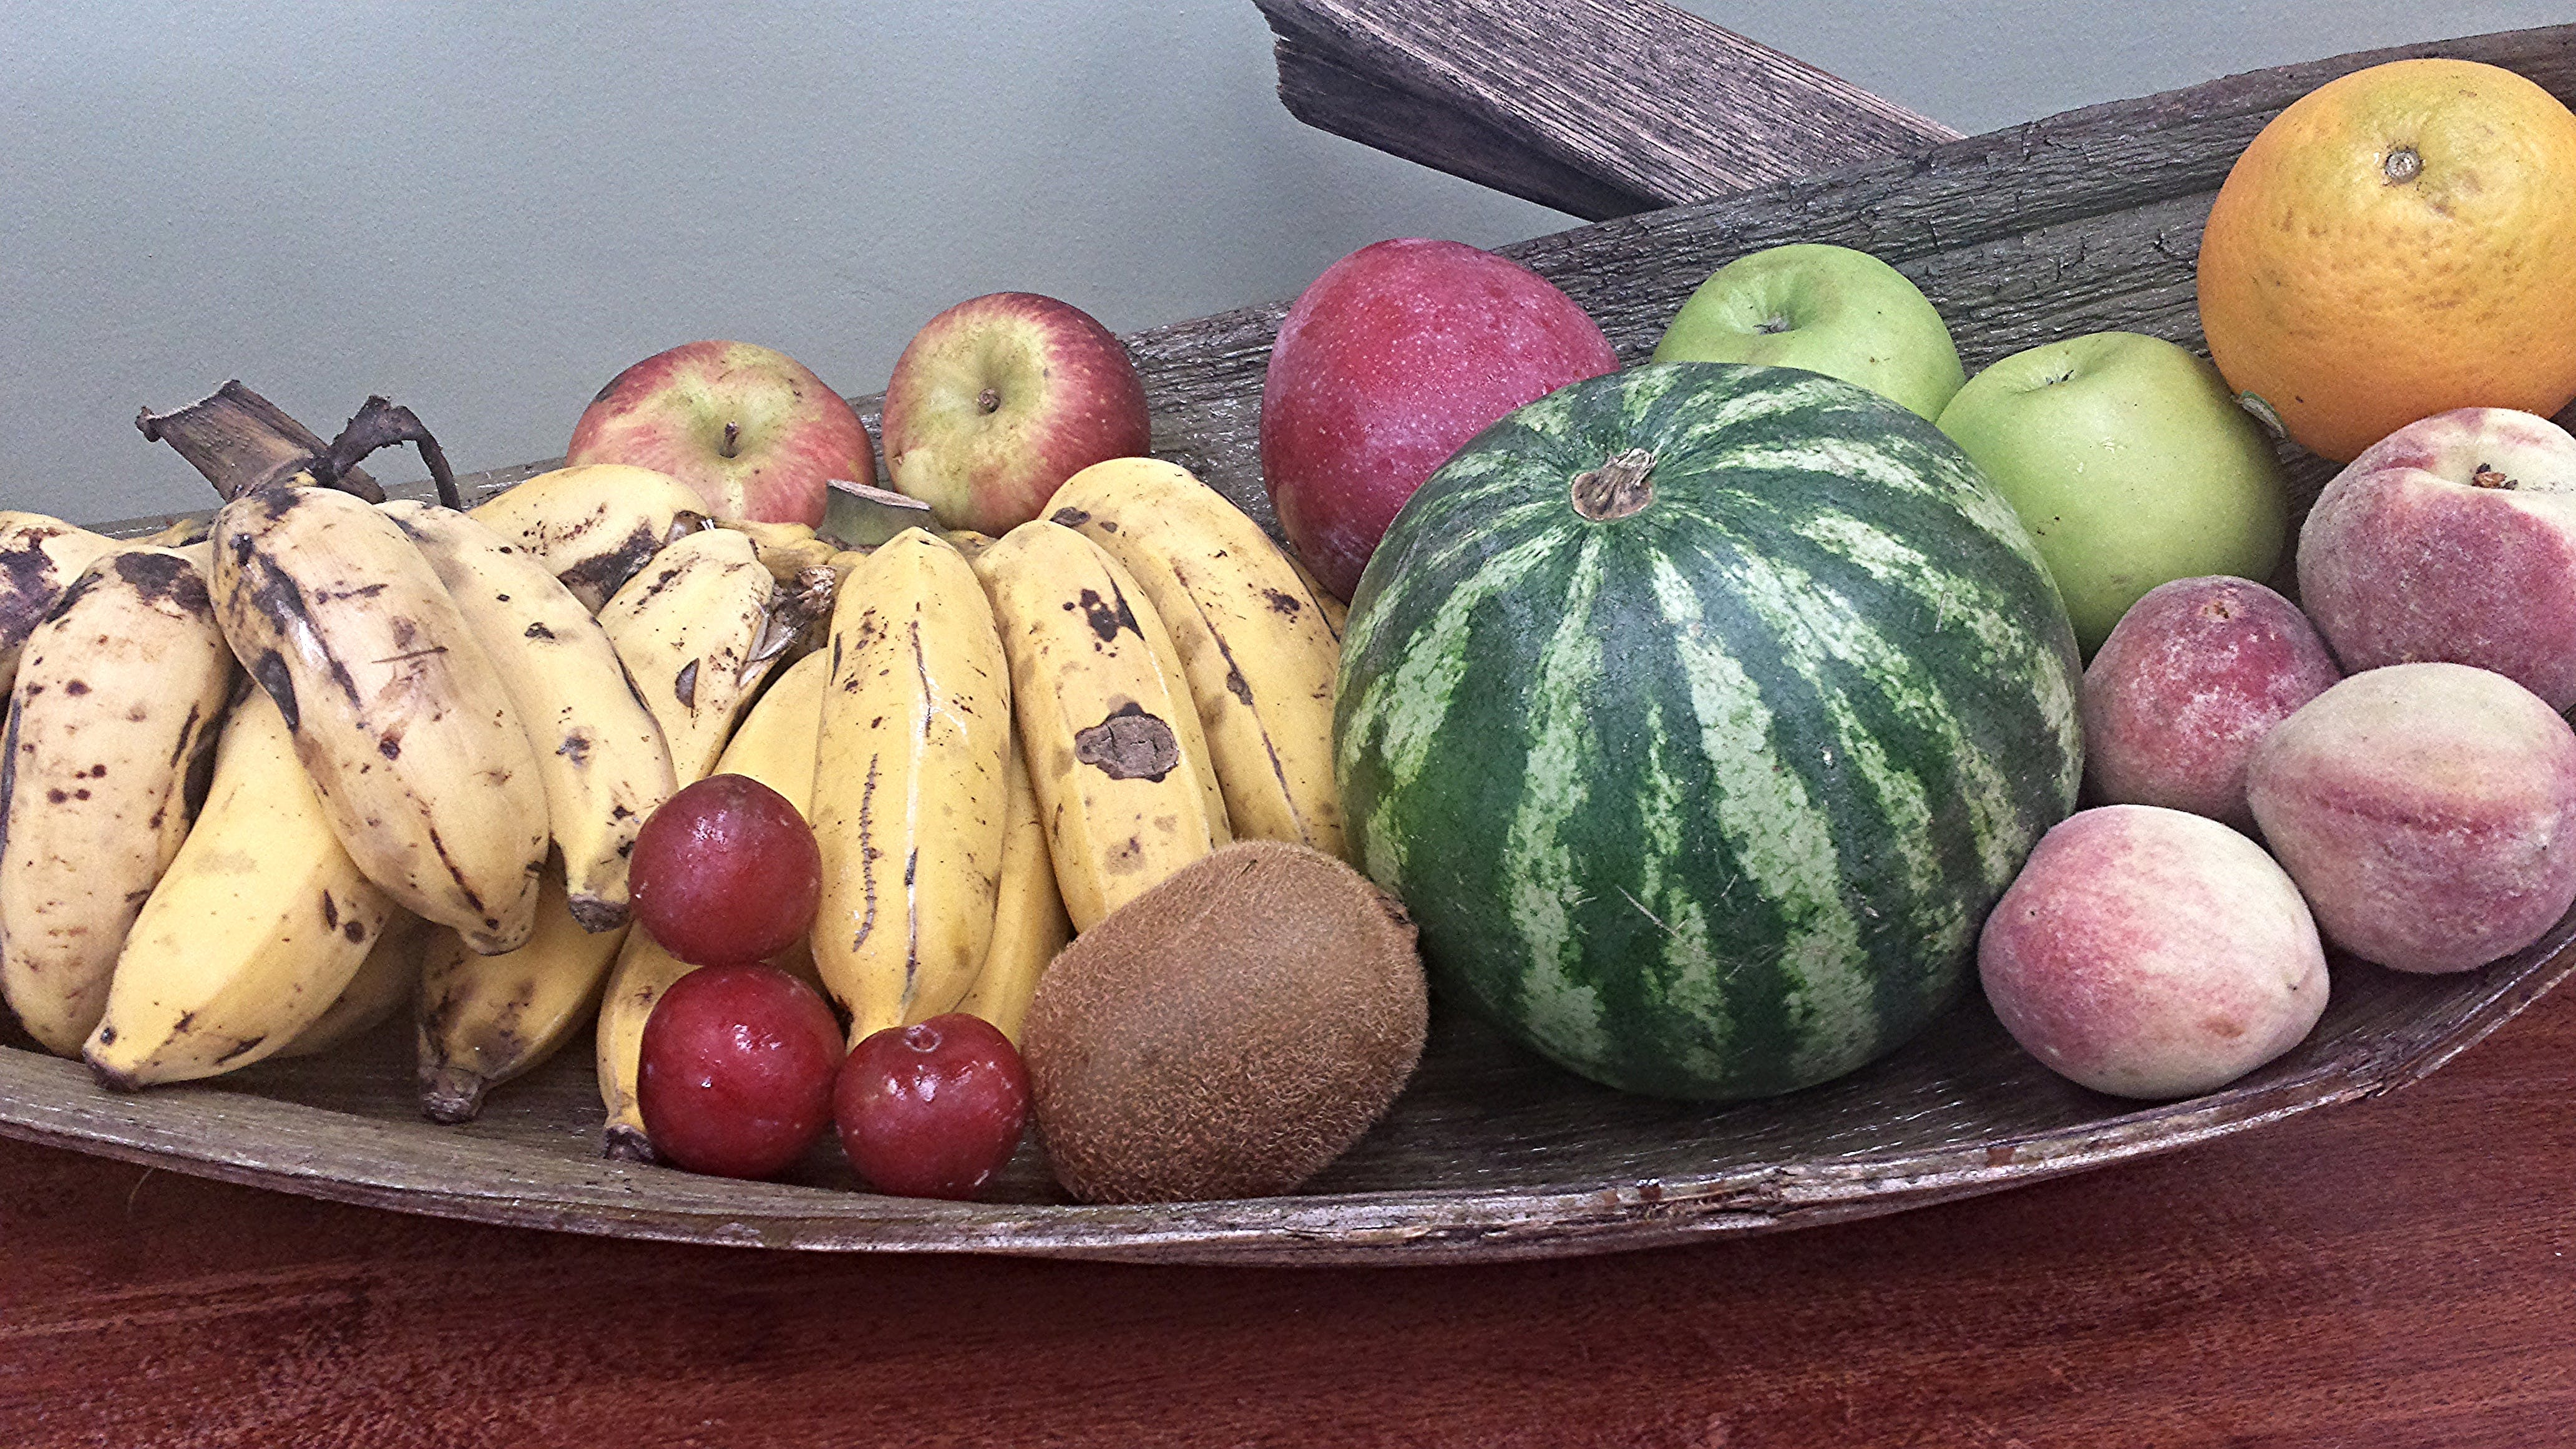 Banana, Watermelon, Peach, Apple, Orange, and Cherry Fruits on Wooden Basket